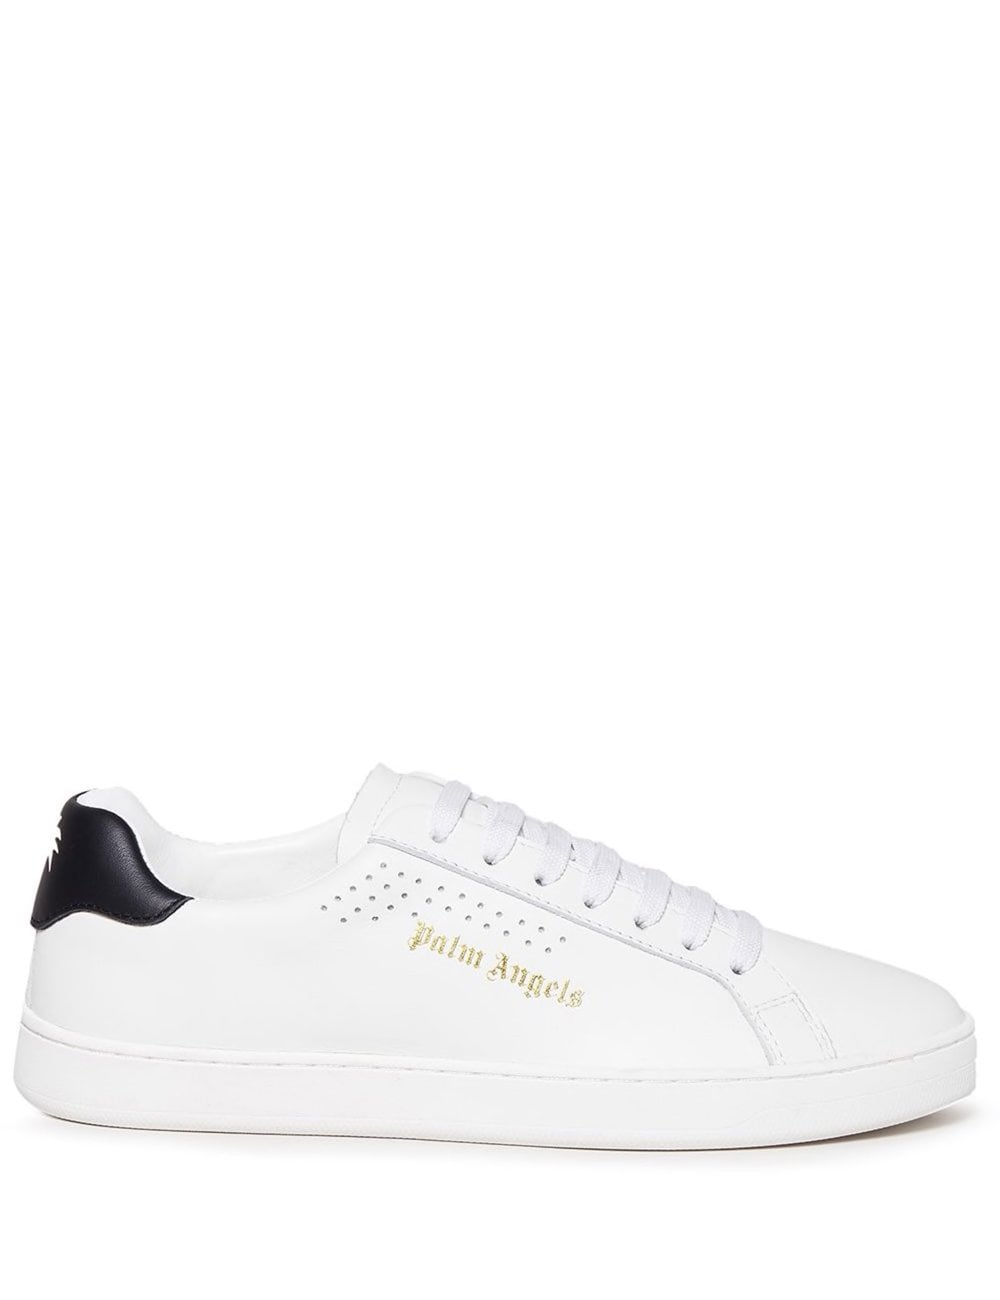 Palm Angels PALM ANGELS WOMEN'S NEW TENNIS SNEAKERS WHITE BLACK COLOUR: WHITE